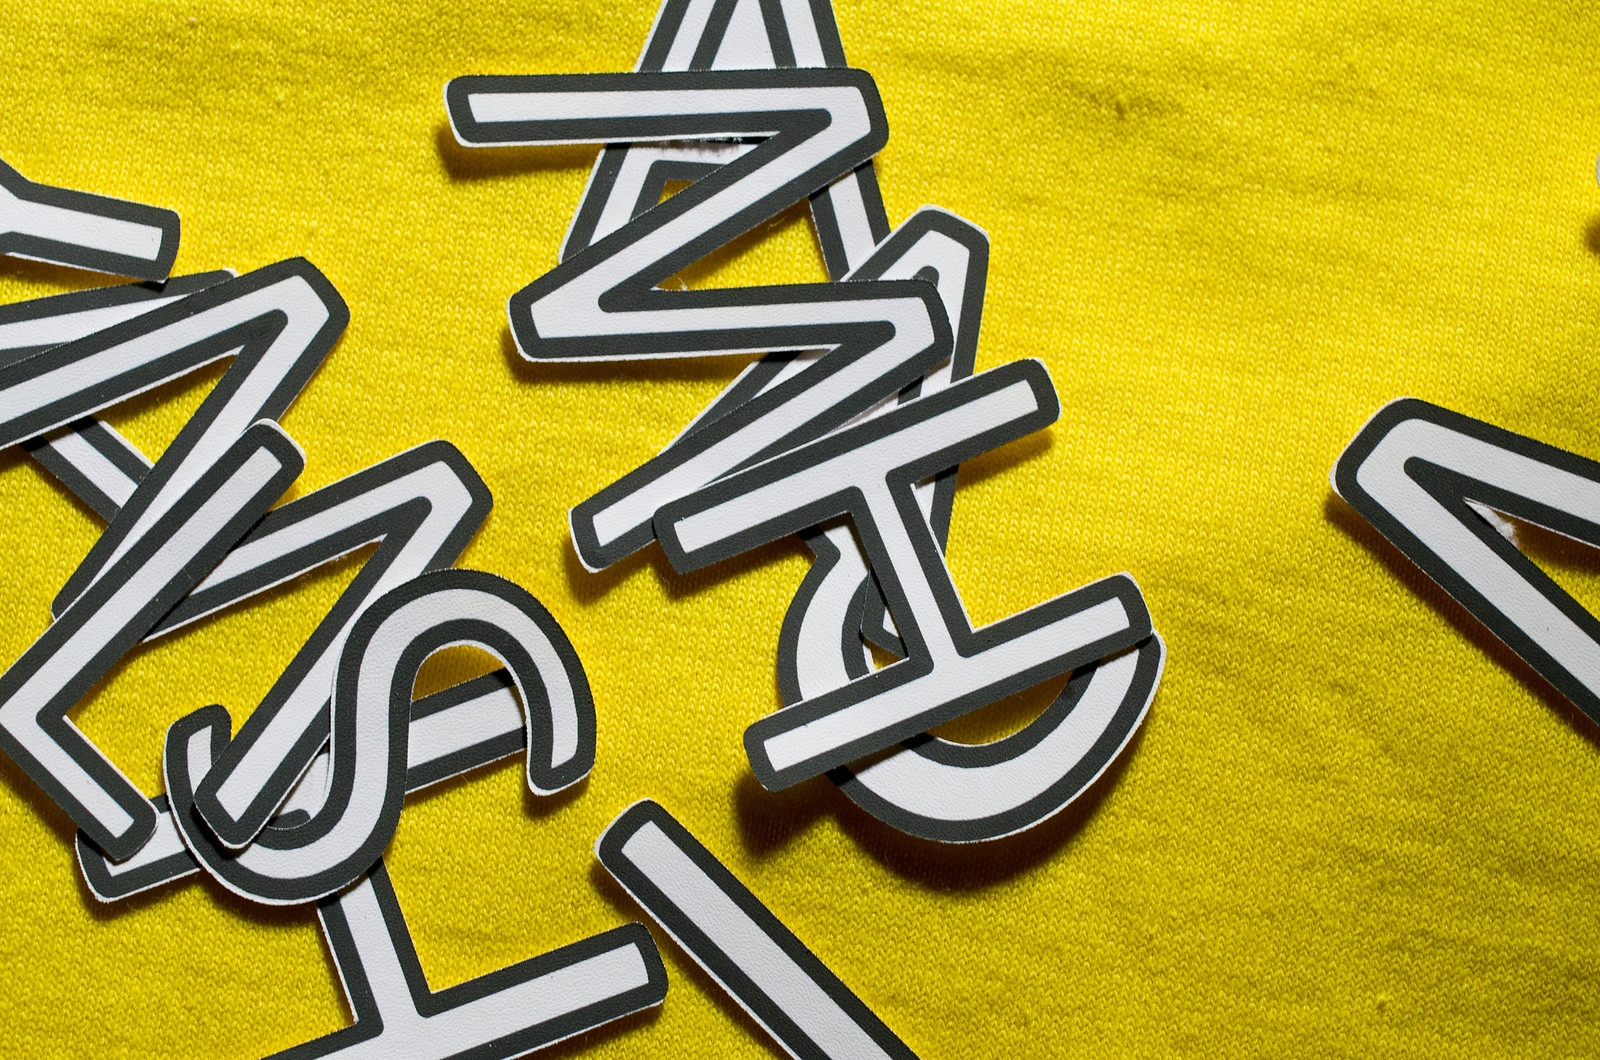 picture of jumbled letters on a yellow fabric